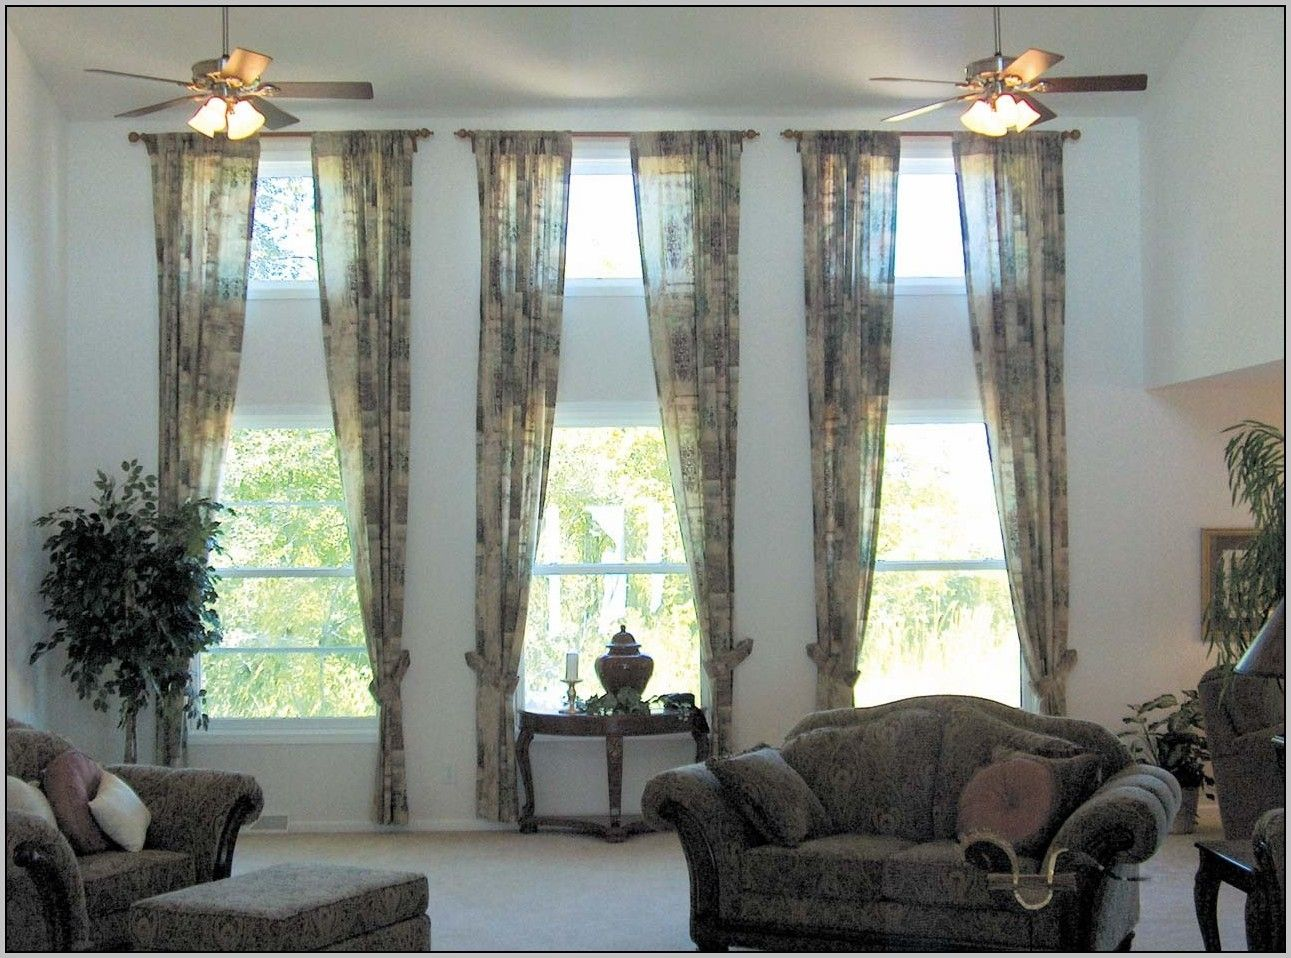 Curtain Ideas For Living Room 3 Windows Curtains Living Room Window Curtains Living Room Curtains Living #window #blind #ideas #for #living #room